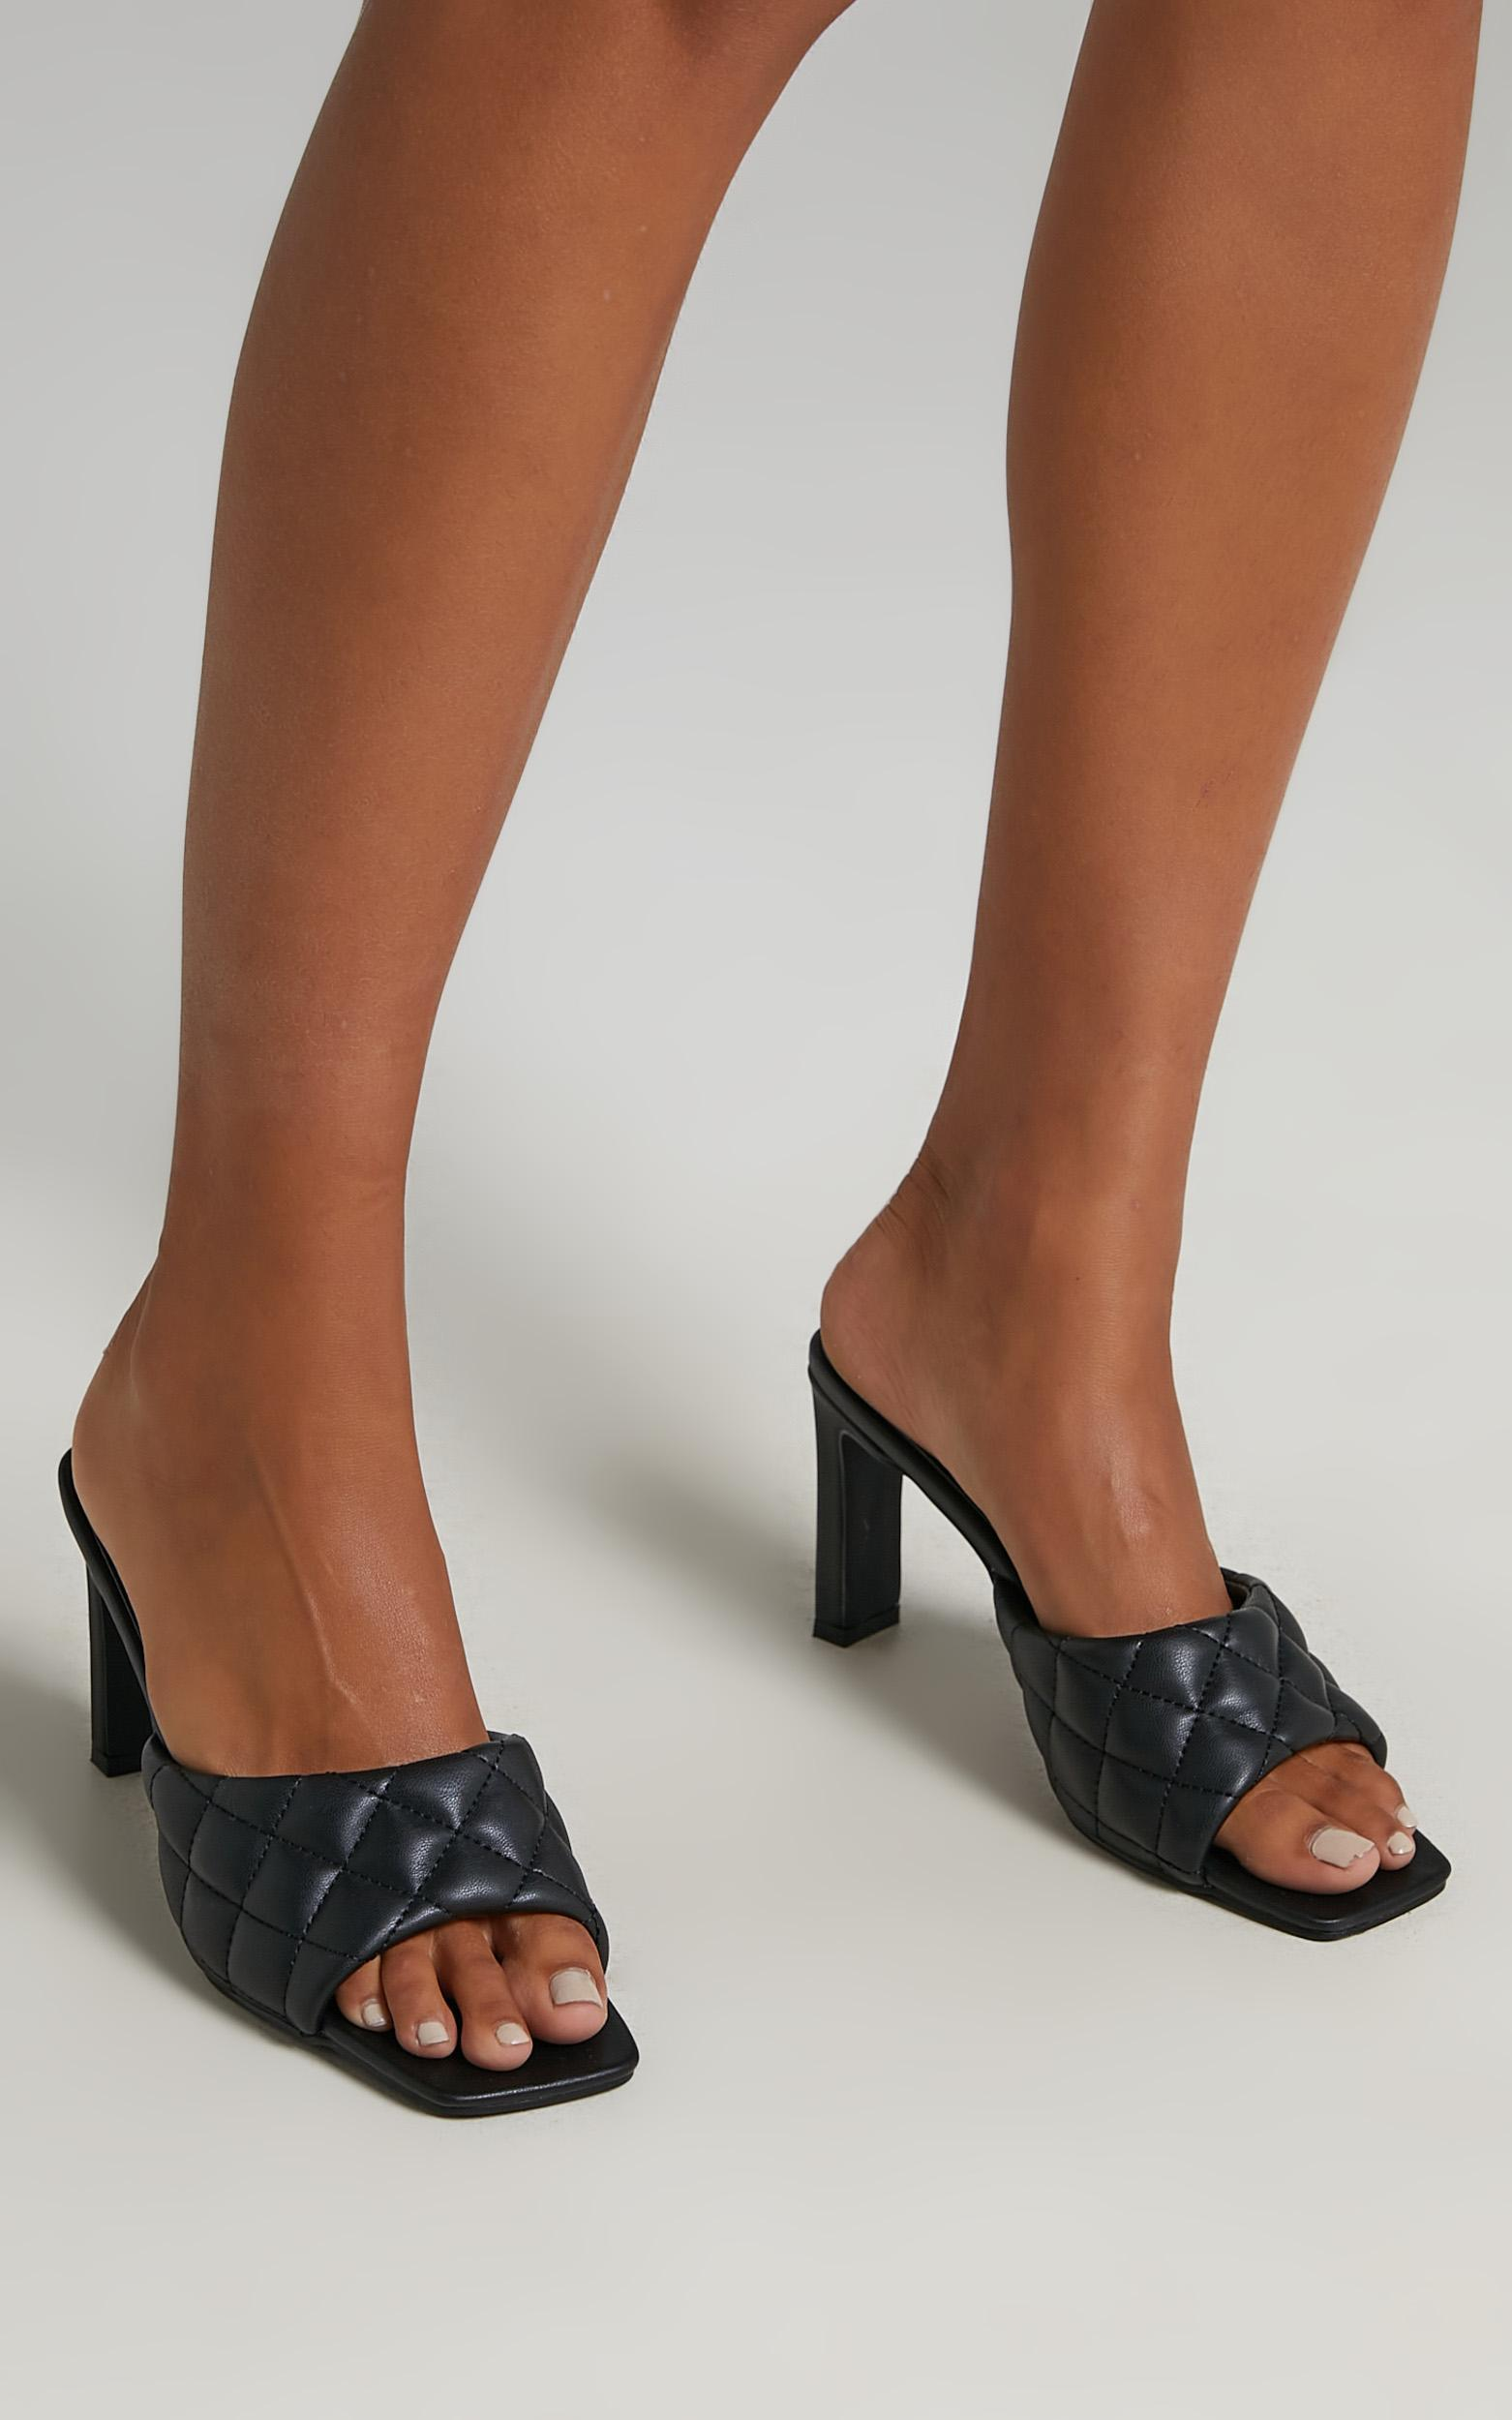 Billini - Orna Heels in Black - 5, Black, hi-res image number null